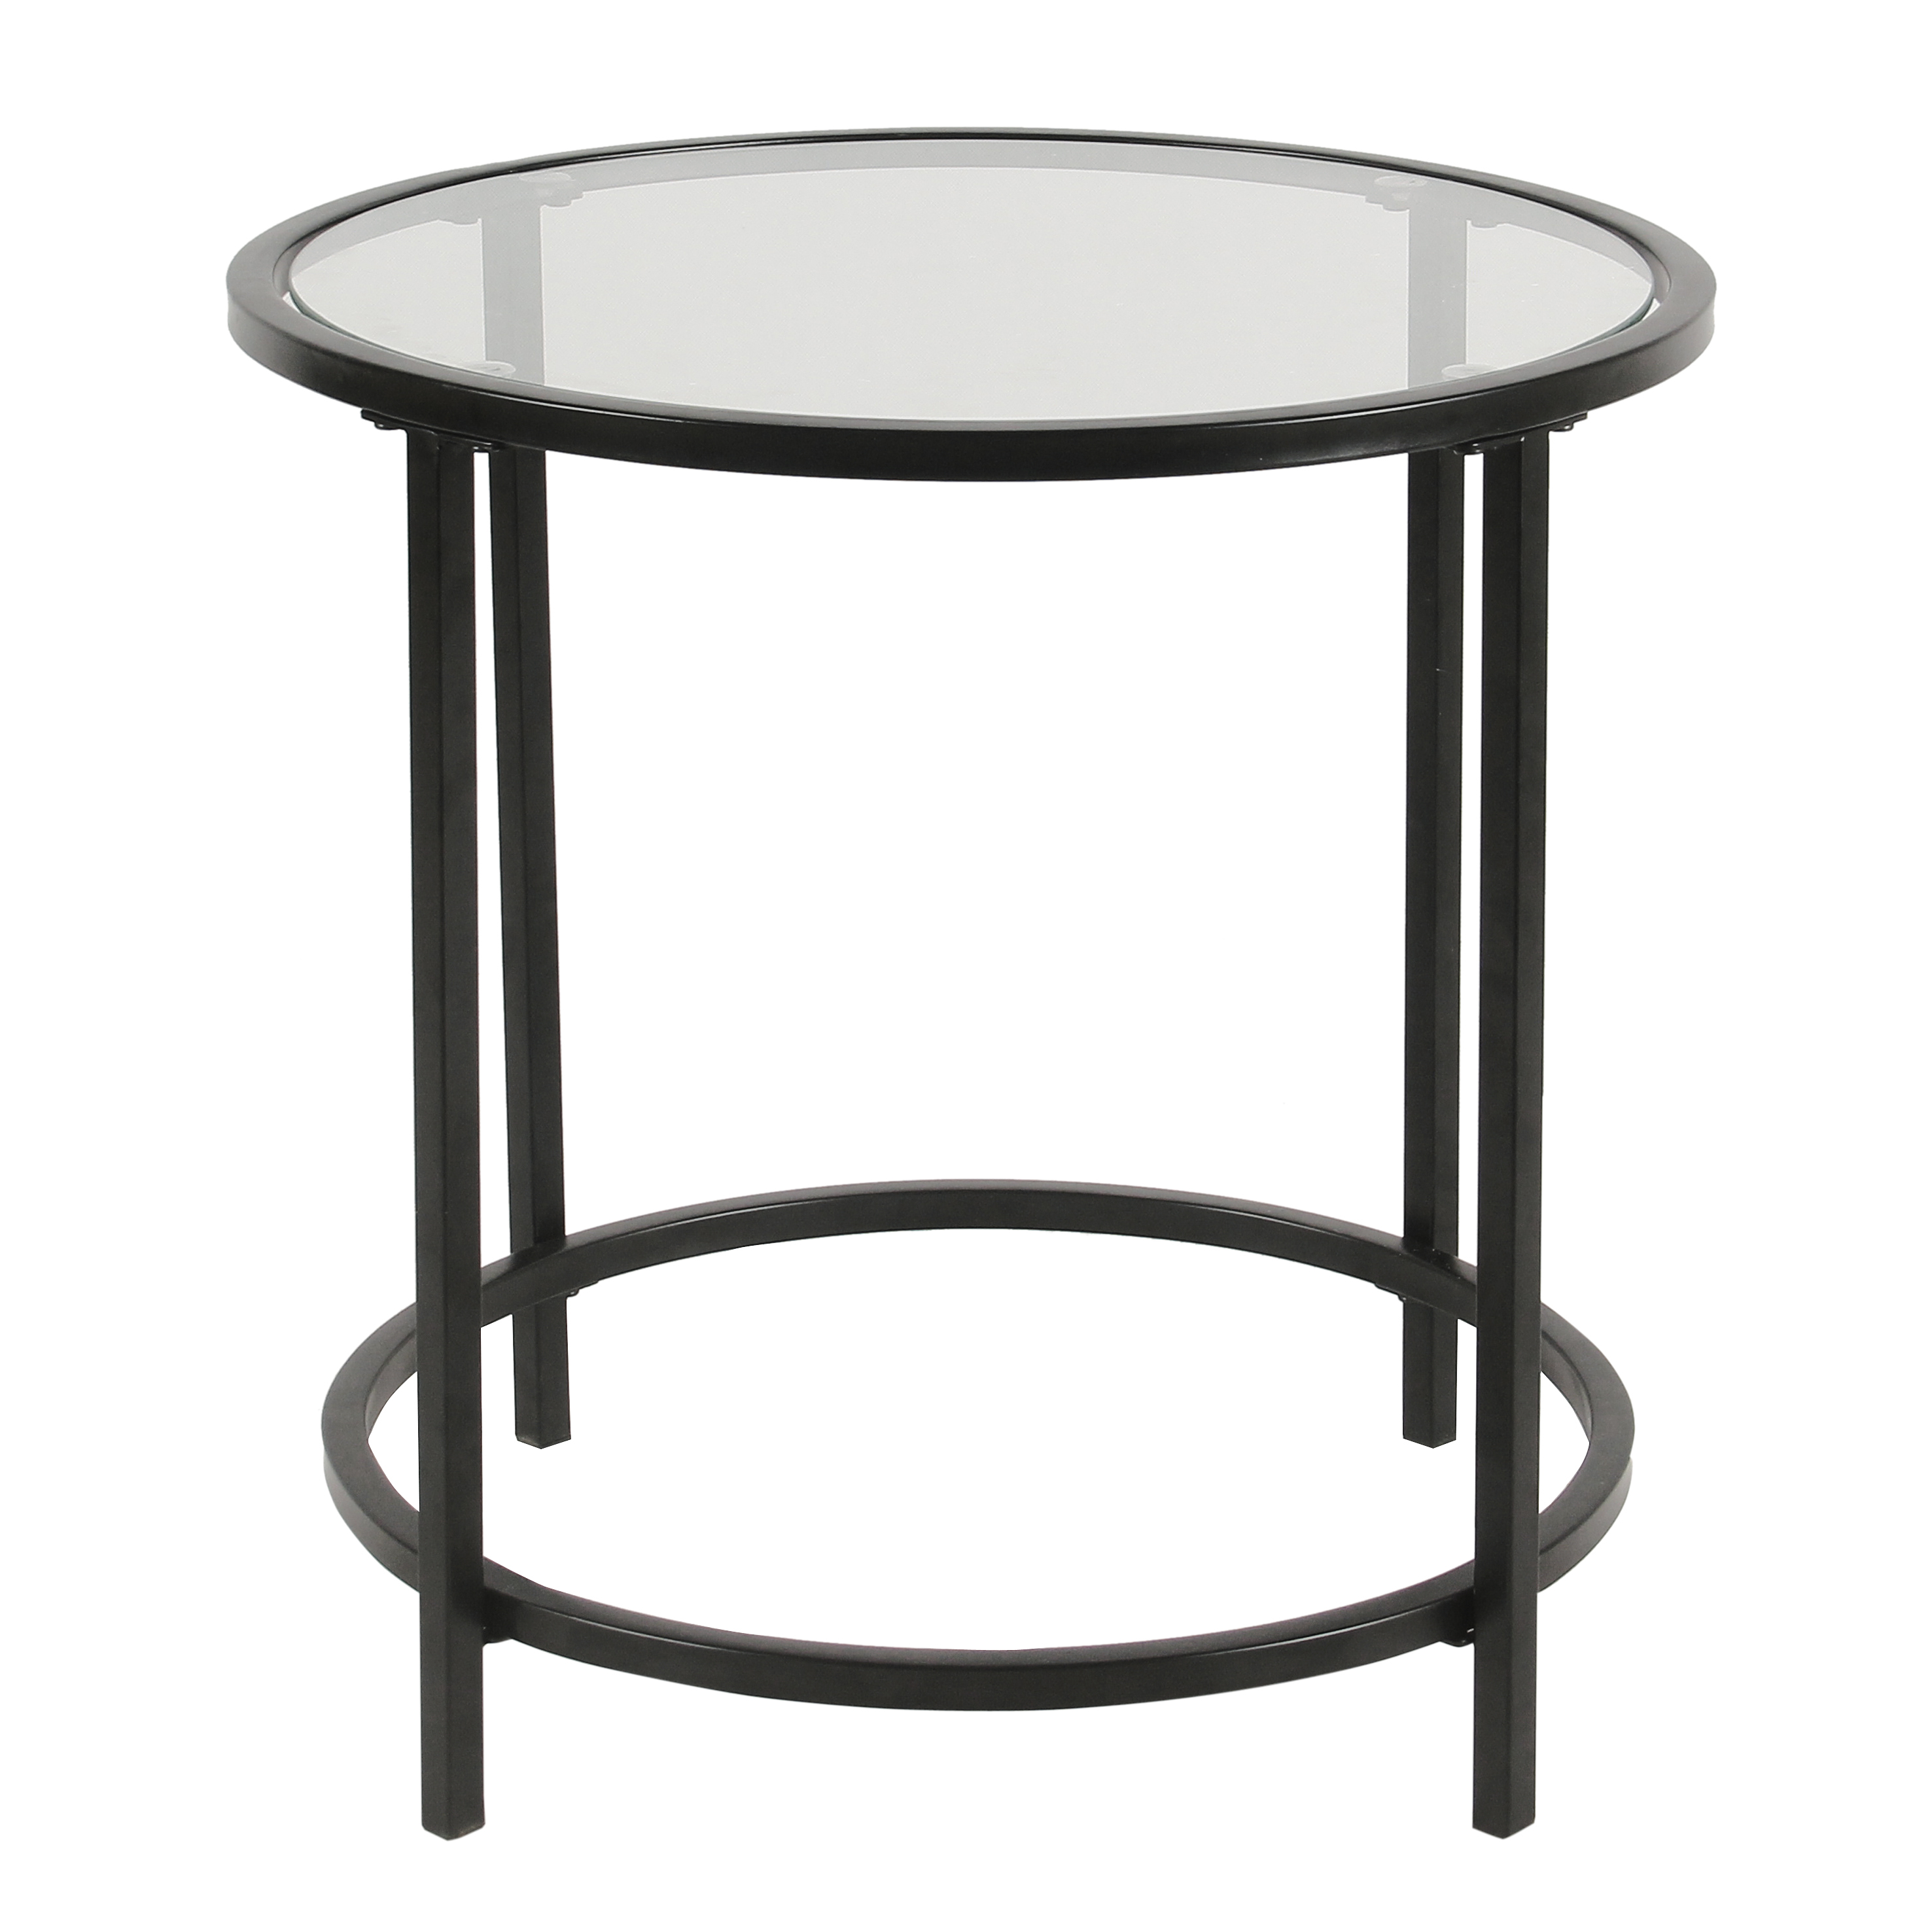 homepop round metal accent table with glass top black legs wood narrow end tables for living room pottery barn cole task lamp waterproof furniture solid console side wheels dining